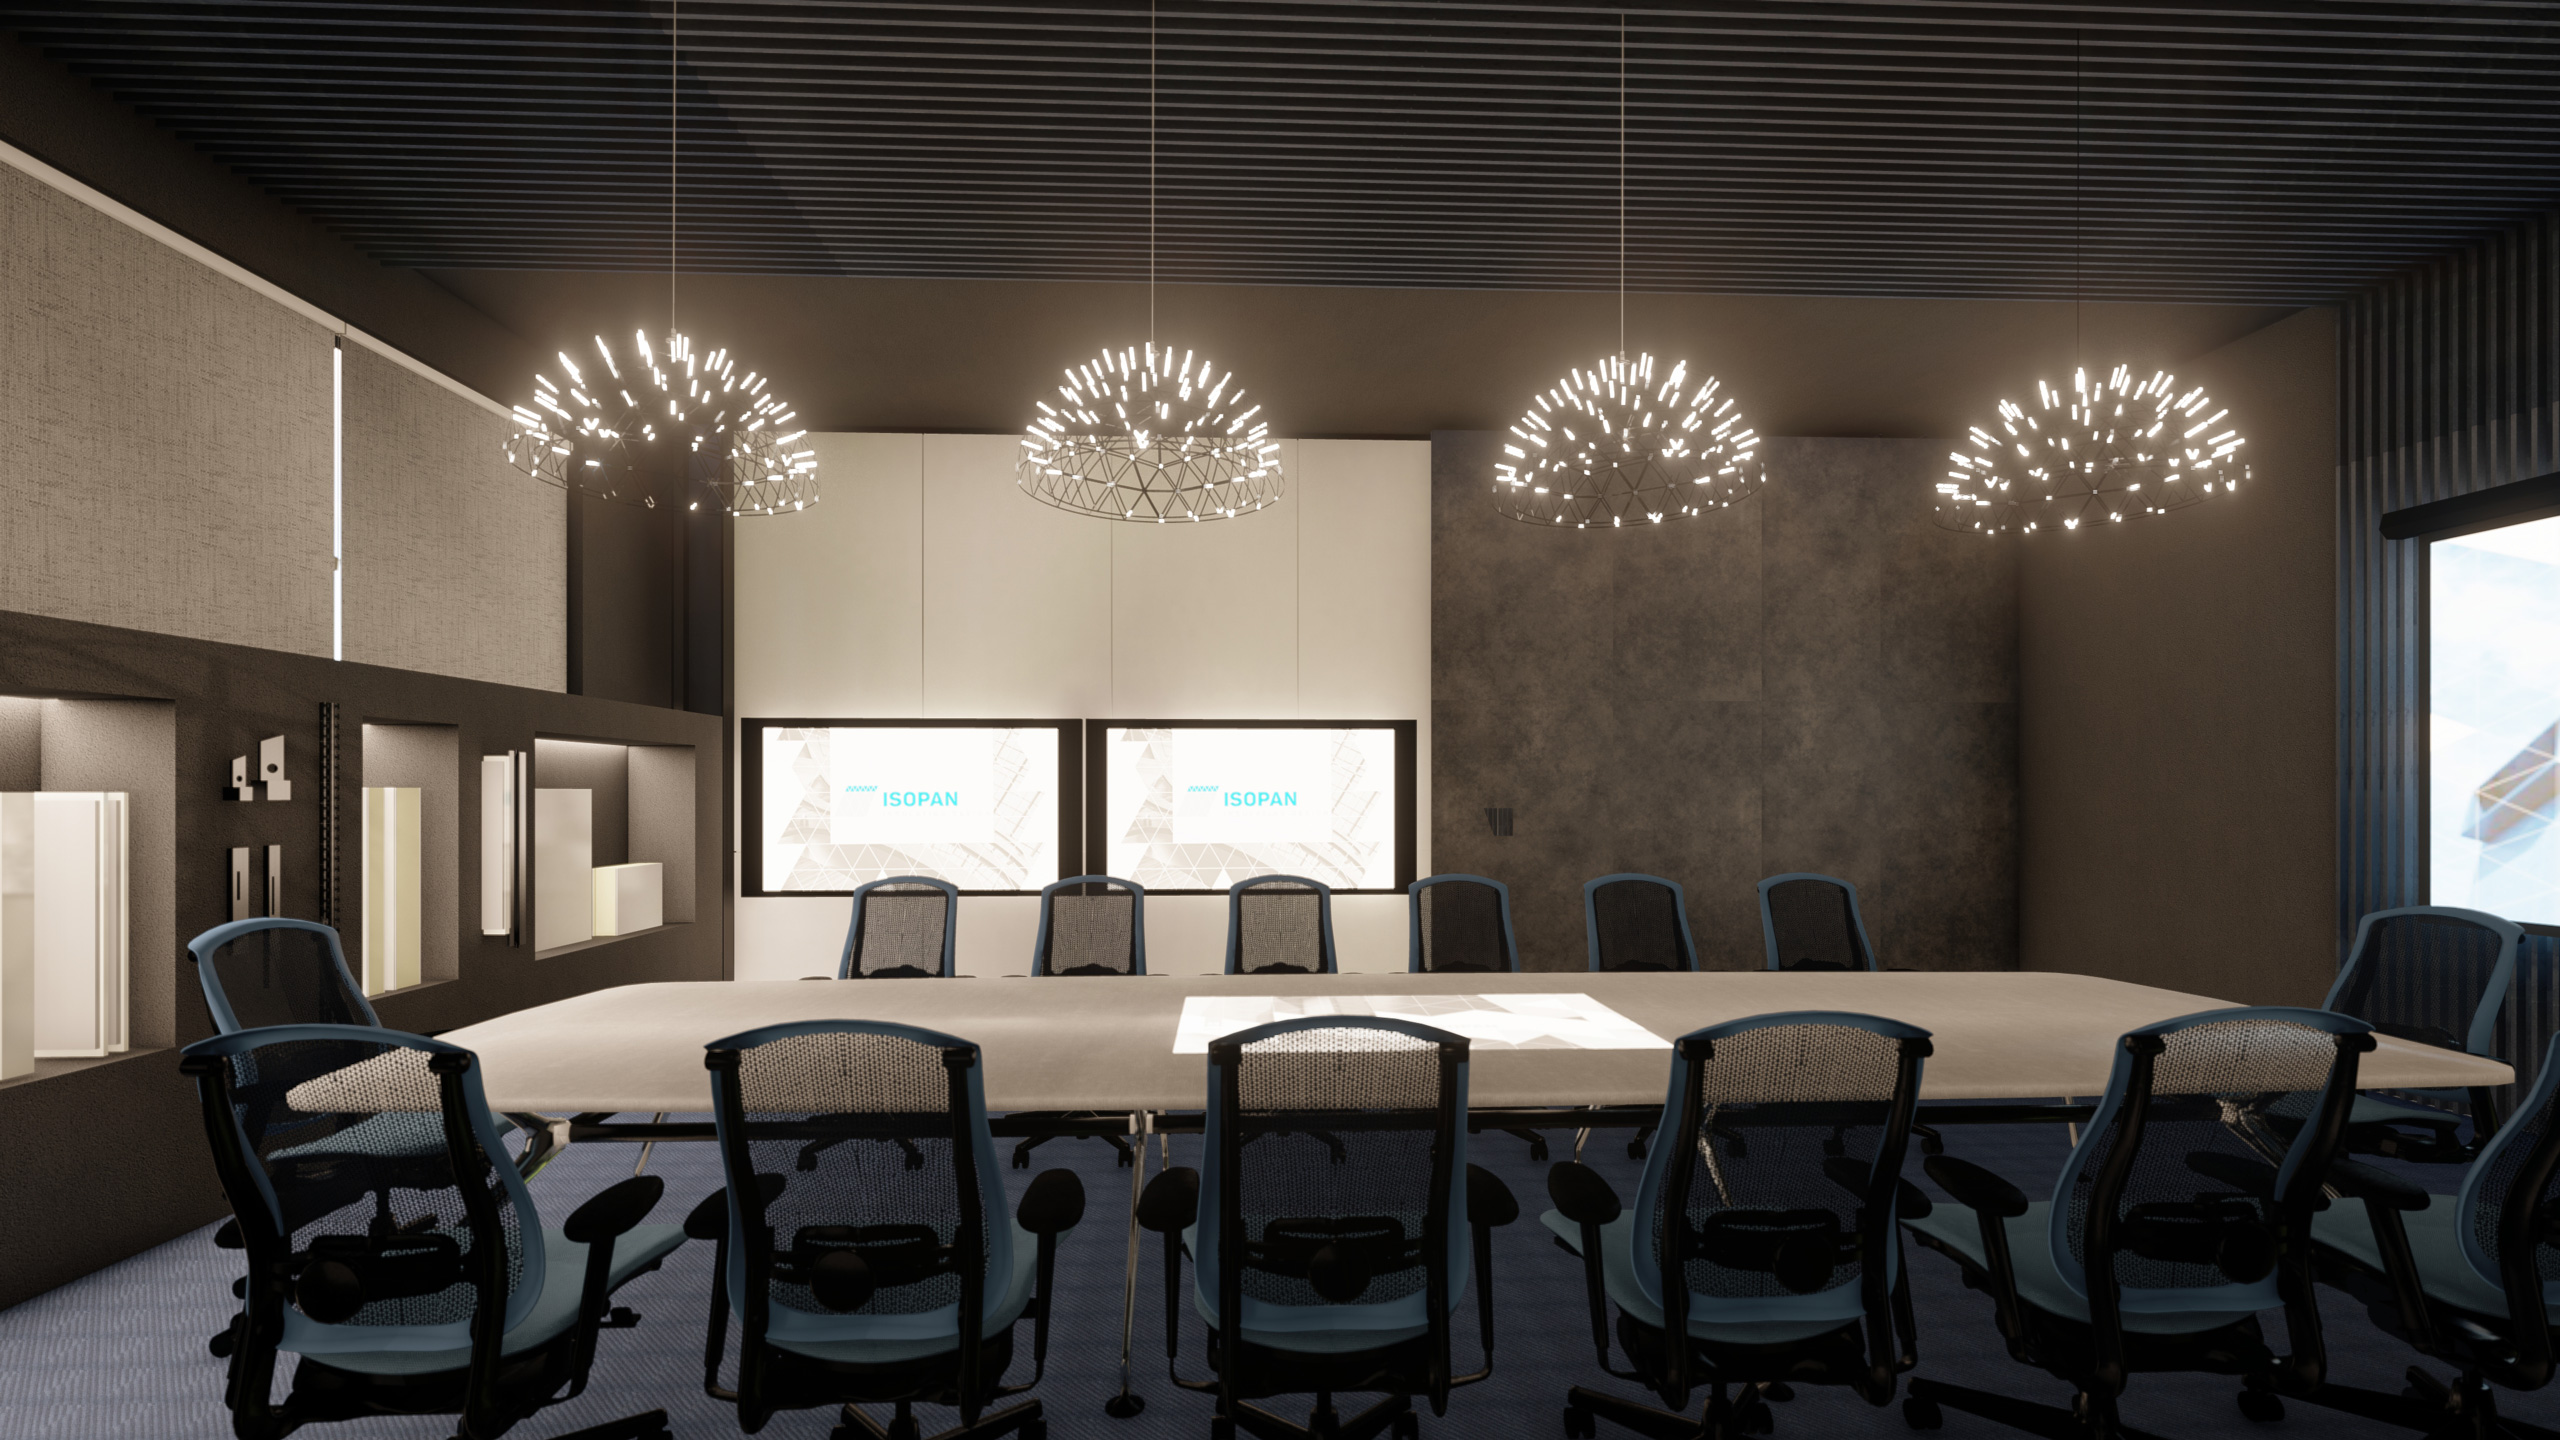 Office-Isopan-conference-room_10—Photo